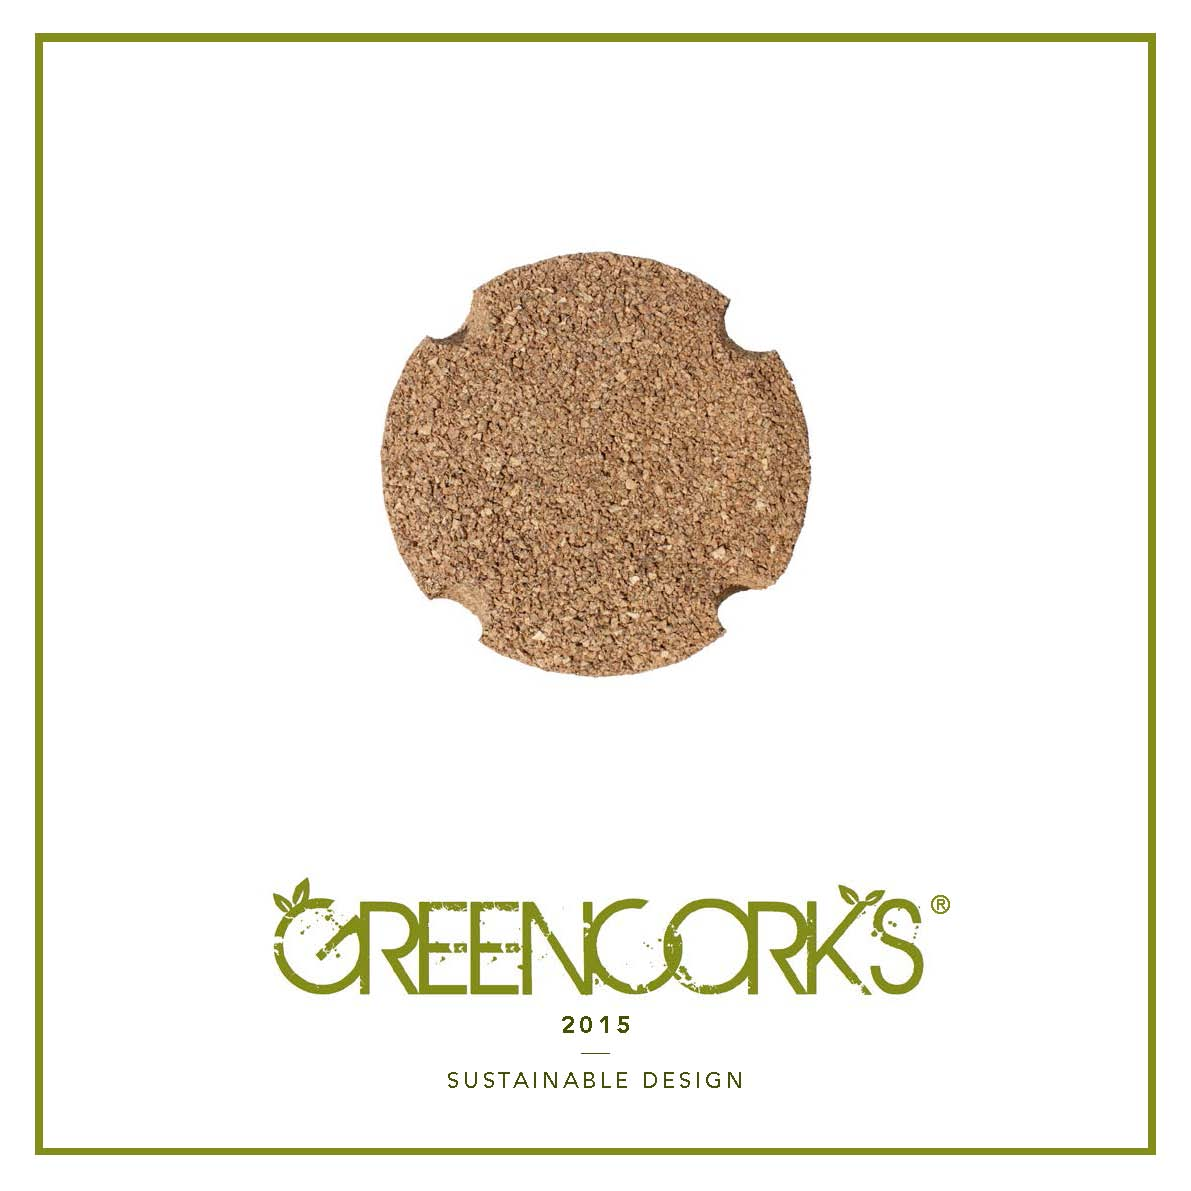 CATALOGO 2015_Greencorks_IT-EN_Page_01